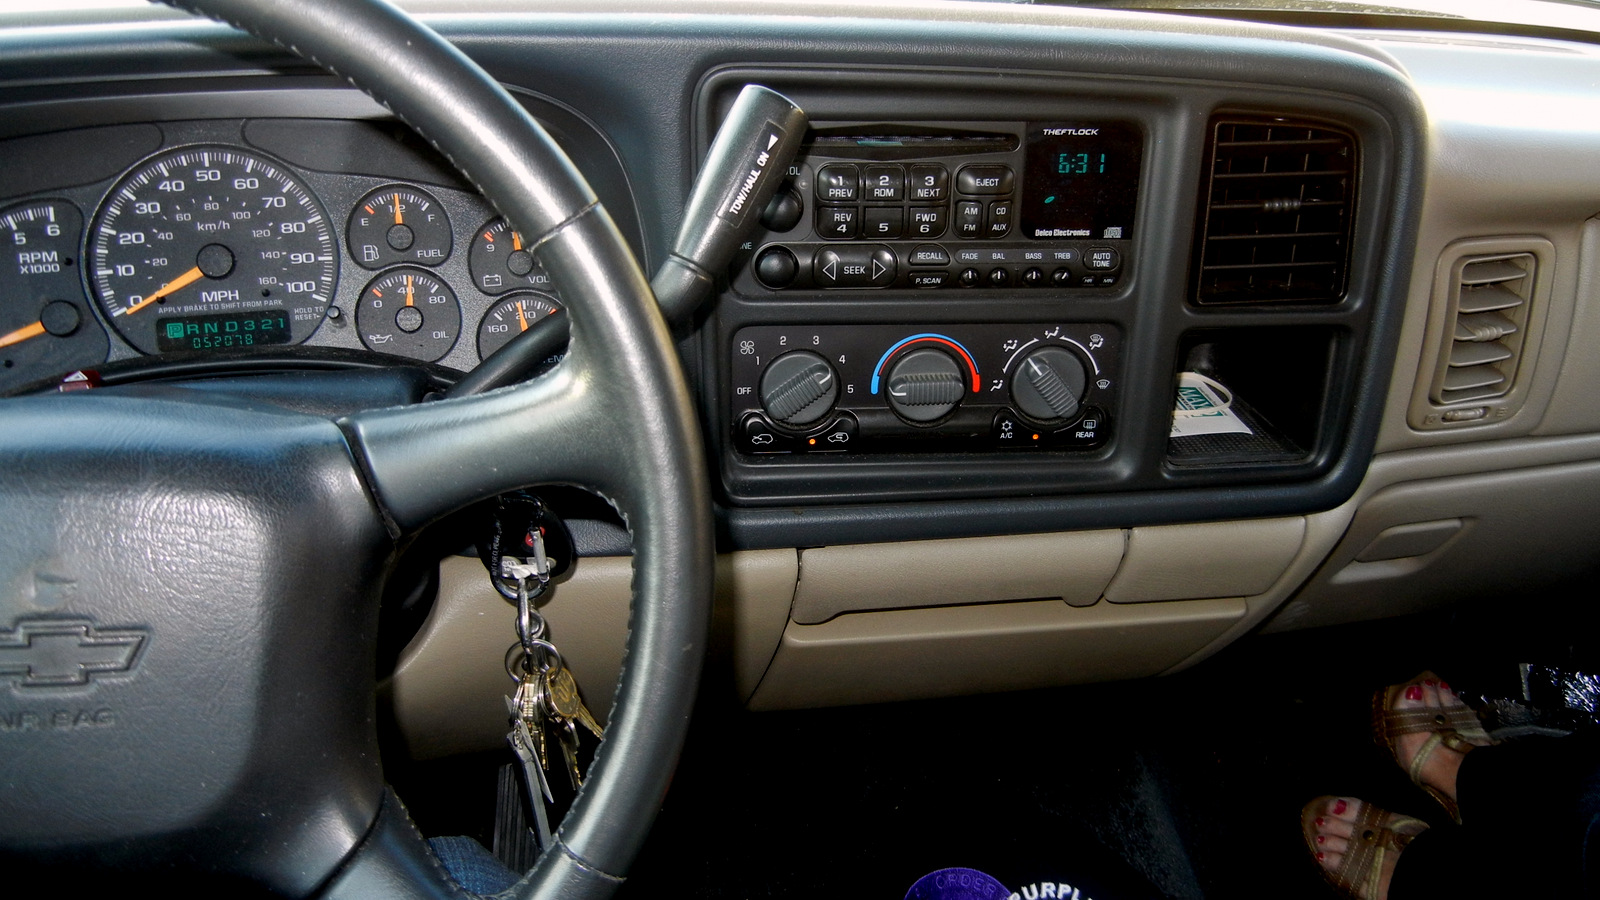 All Chevy 2002 chevy models : 2002 Chevrolet Avalanche - Information and photos - MOMENTcar